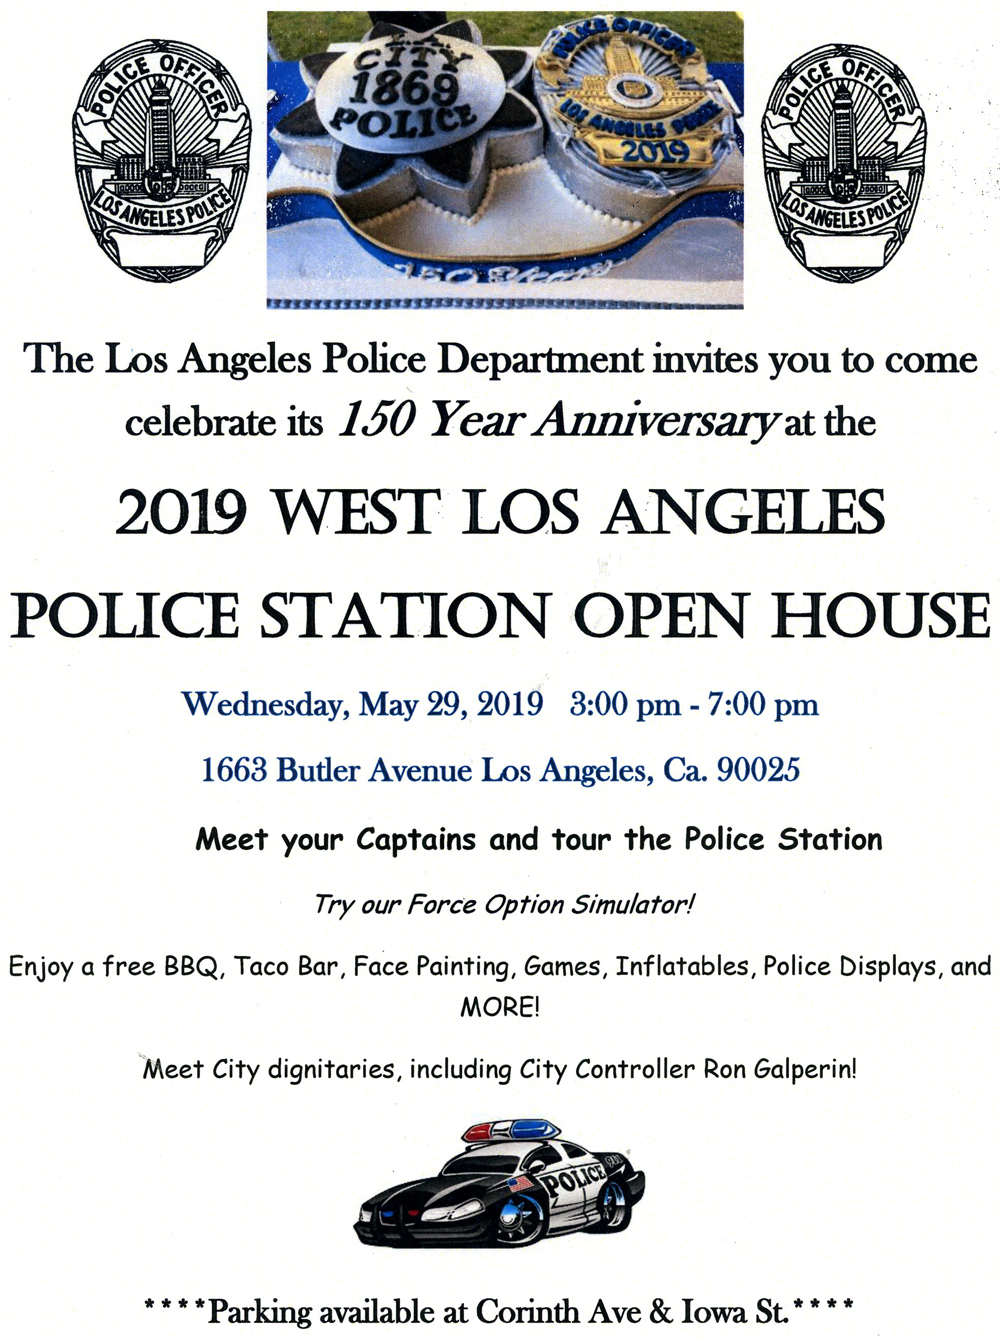 West LA Police Station Open House - Wednesday - May 29th